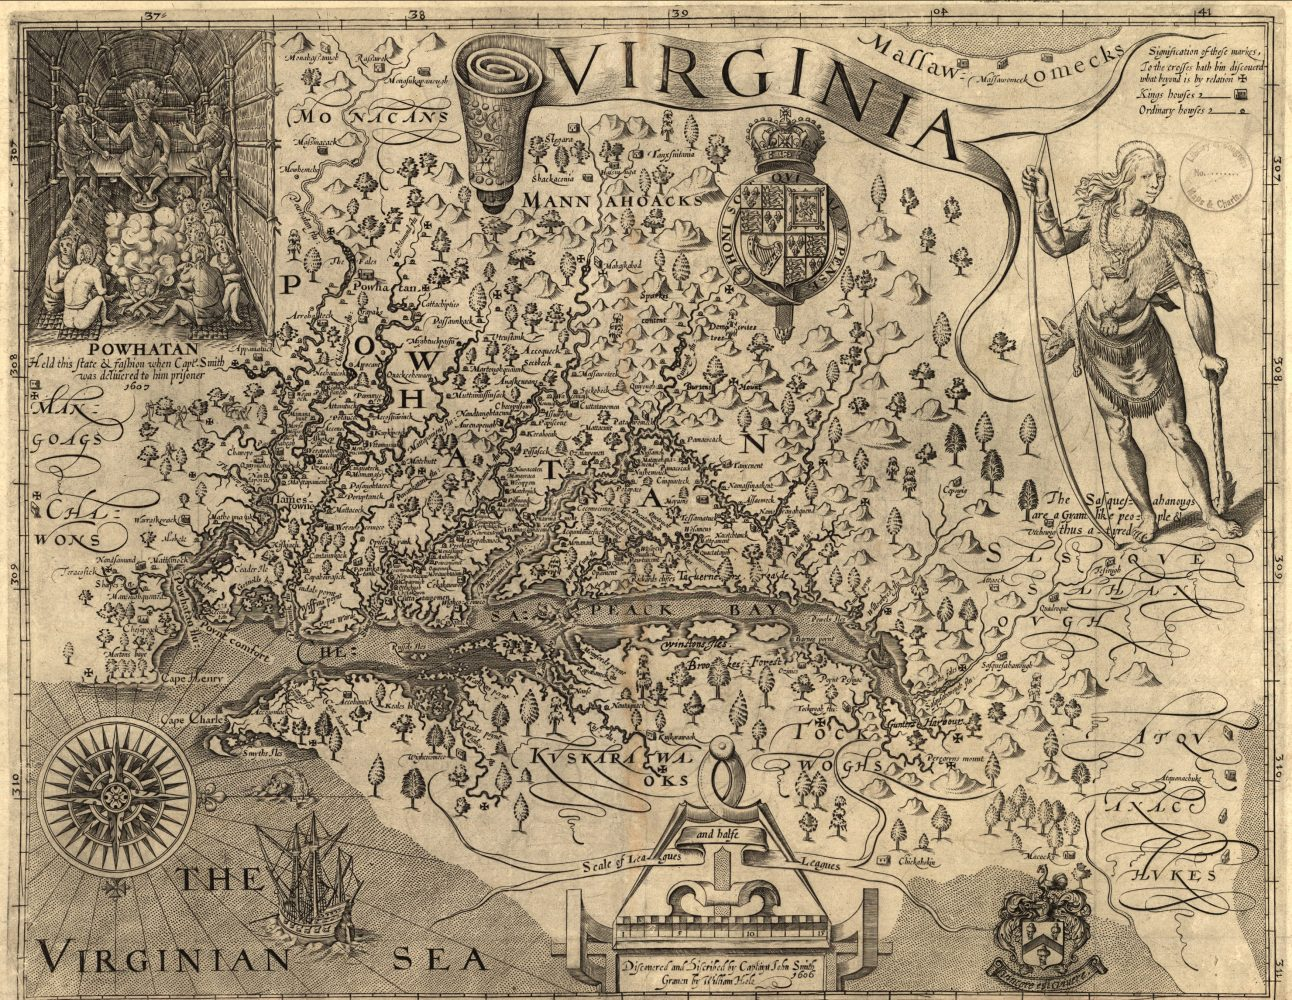 This+is+one+of+the+first+European+maps+of+Virginia+made+by+Captain+John+Smith+who+settled+in+Jamestown+in+1607.